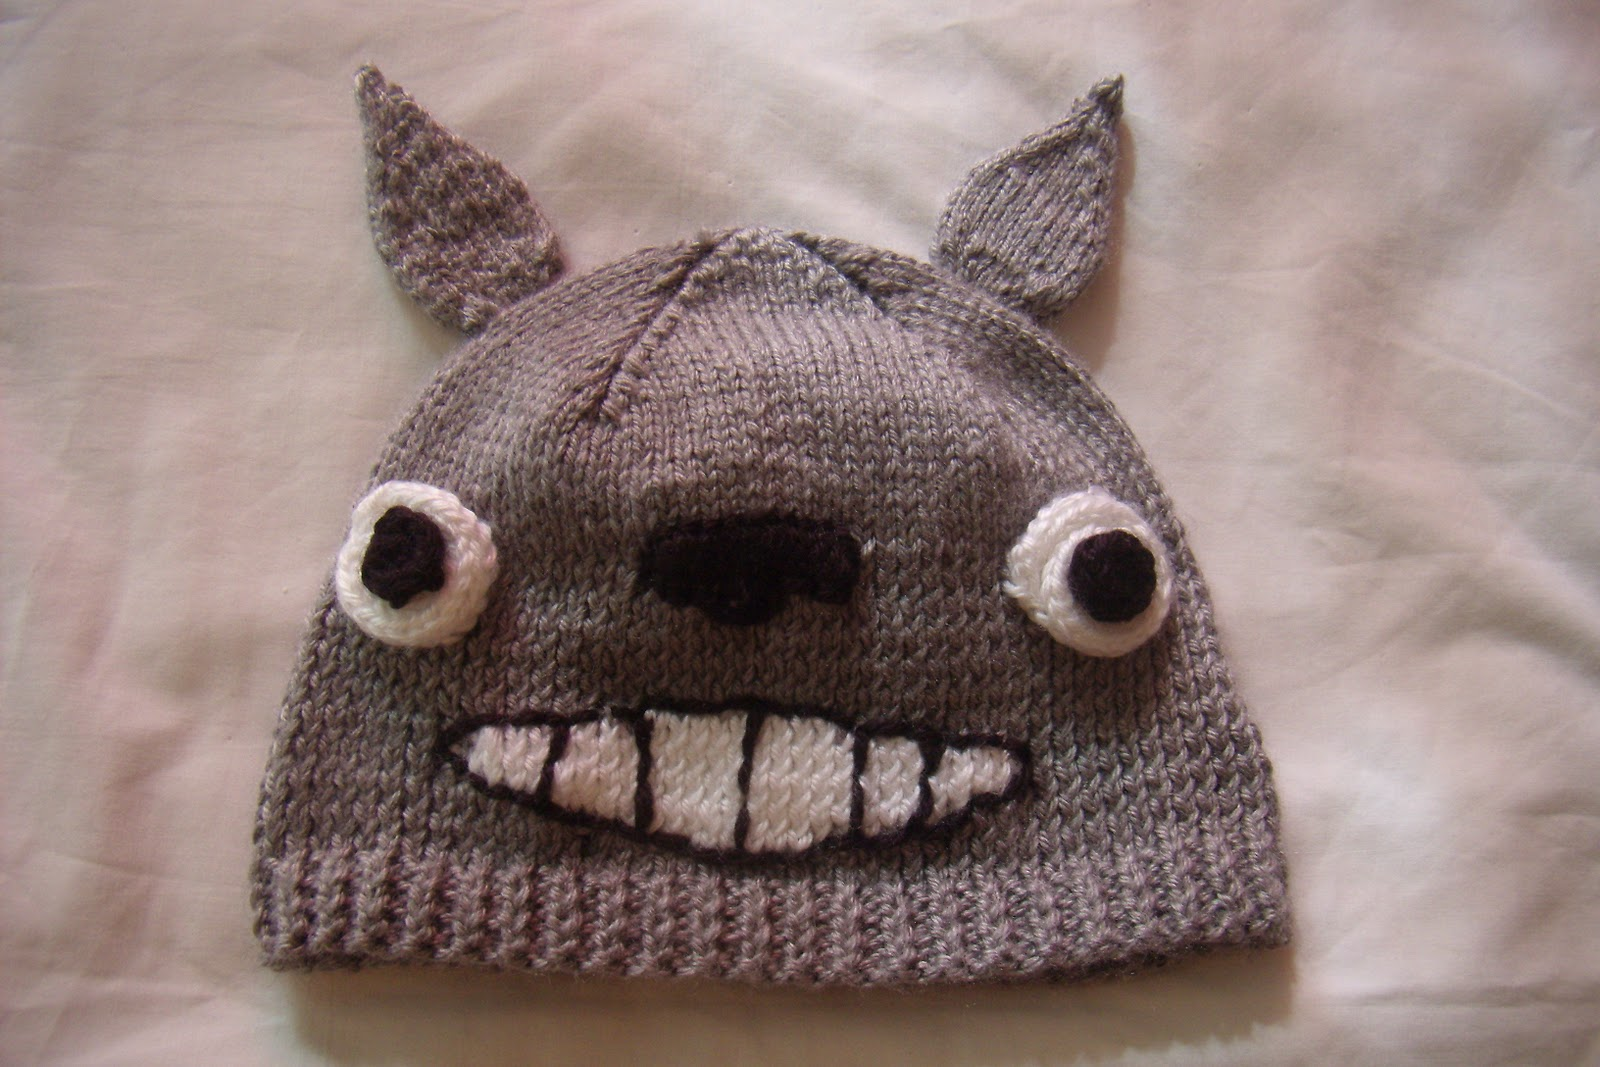 Knitting Pattern For Totoro Hat : Knit With Leng!: WIP Wednesday and Totoro Hat